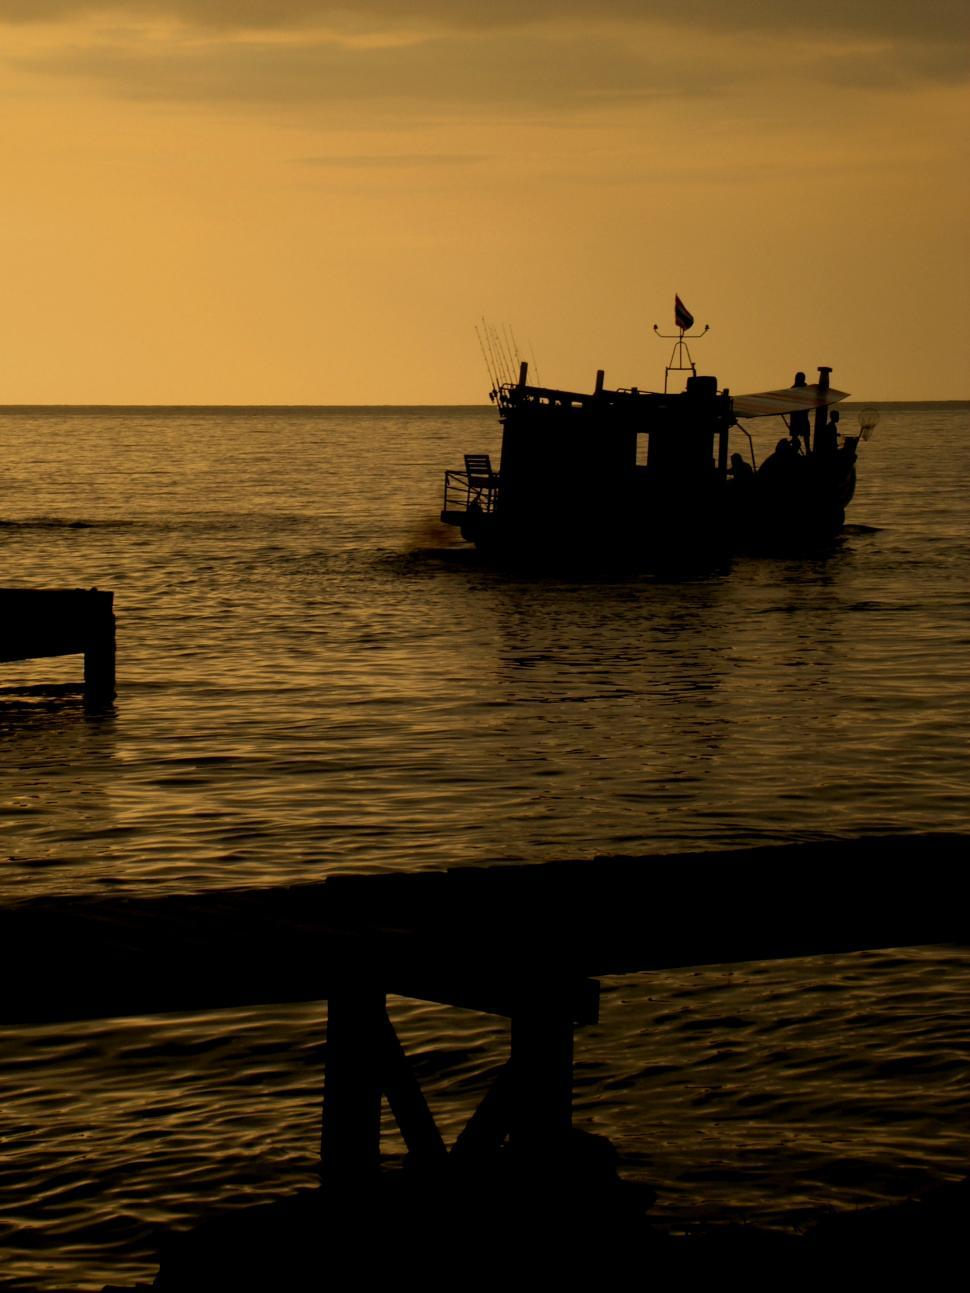 Download Free Stock HD Photo of Fishing Boat on Golden Sunset Online